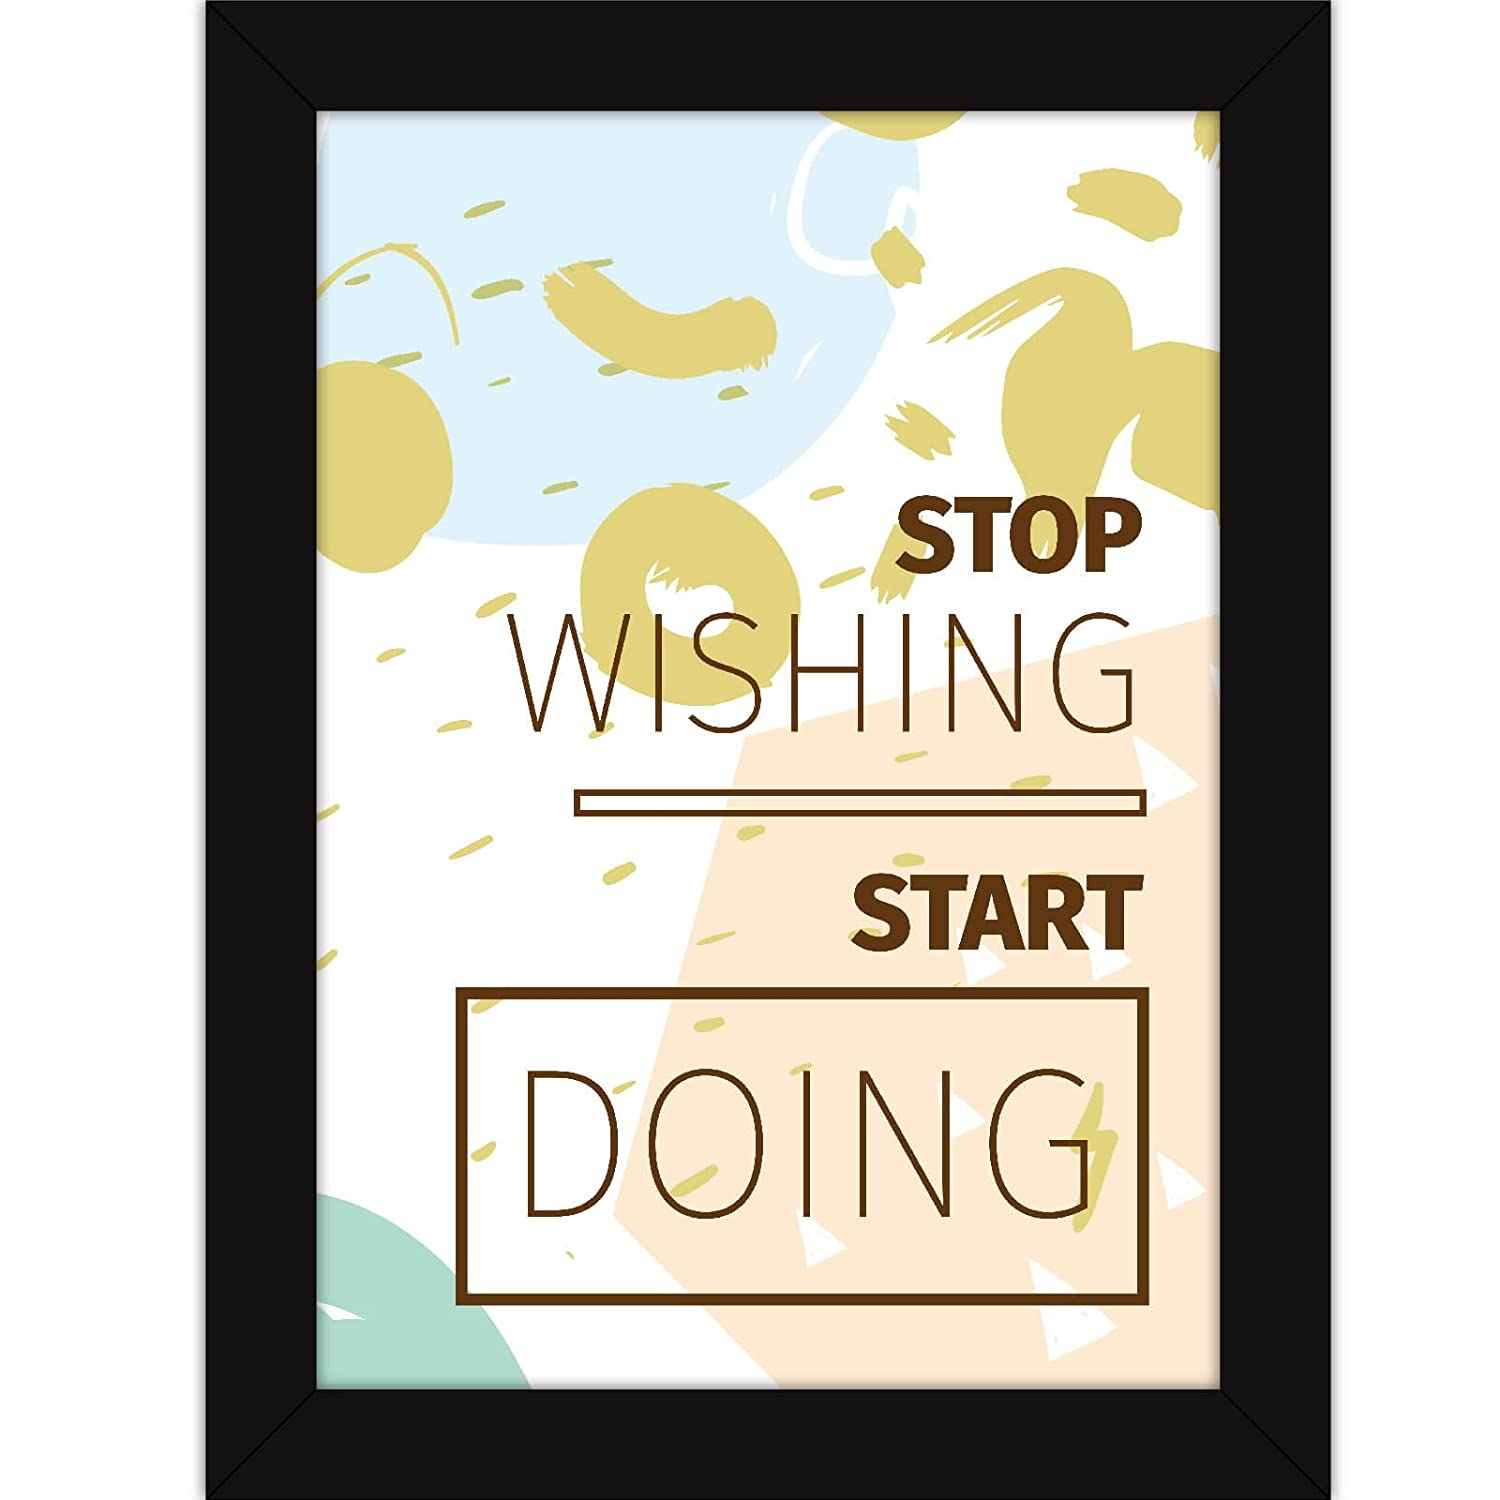 Motivational Quotes For Office And Study Room - Inspirational Posters With Frames - Start Doing